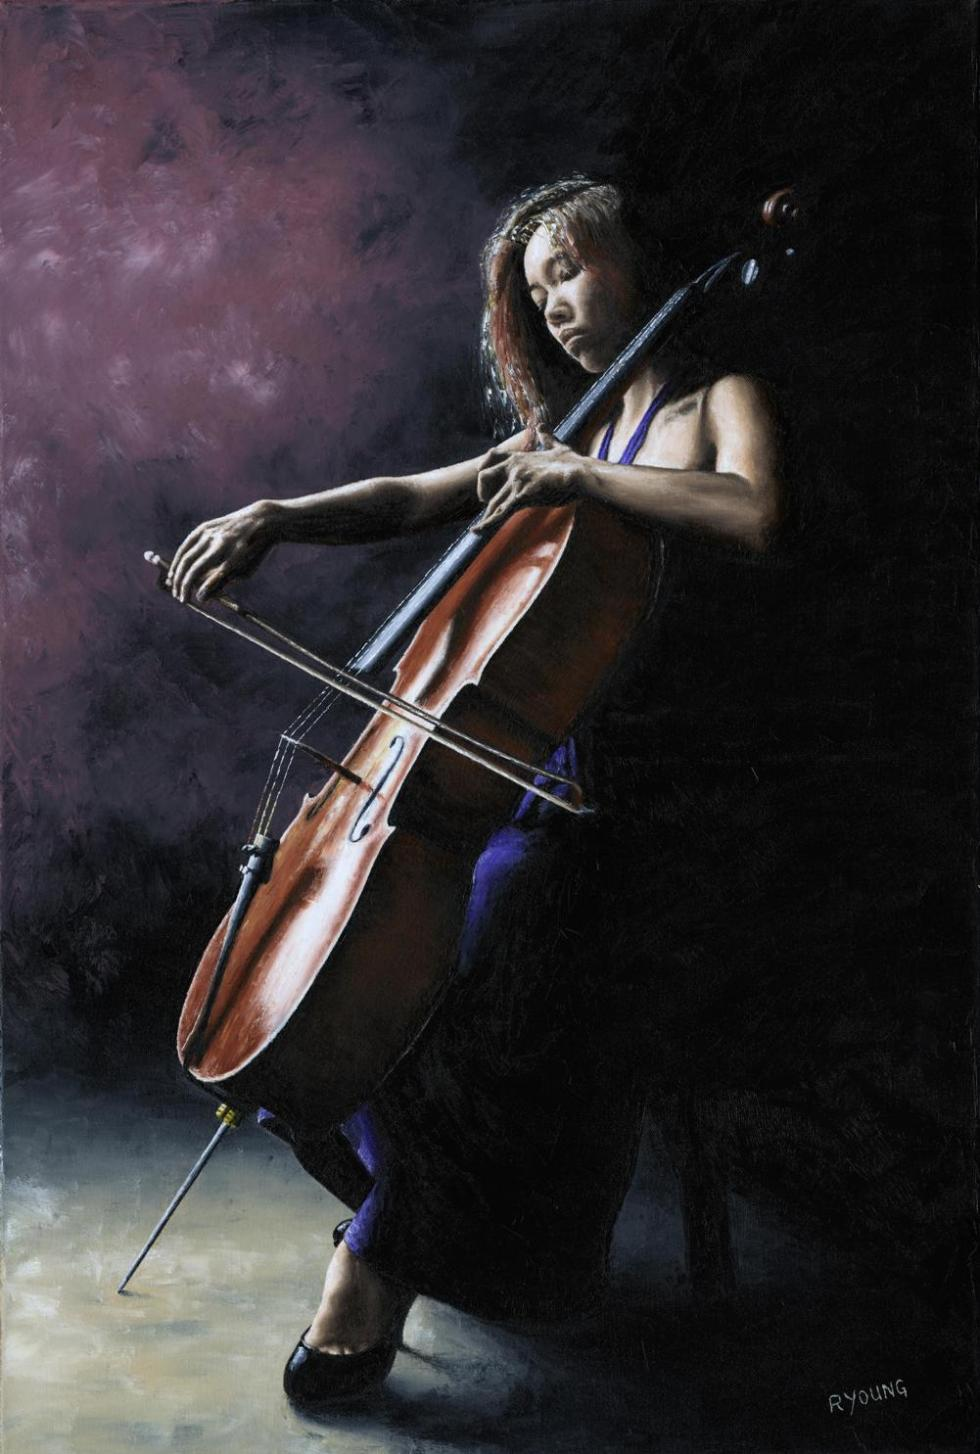 Emotional Cellist - Alicia Ward. Produced in cooperation with Alicia and Stephen Ward.